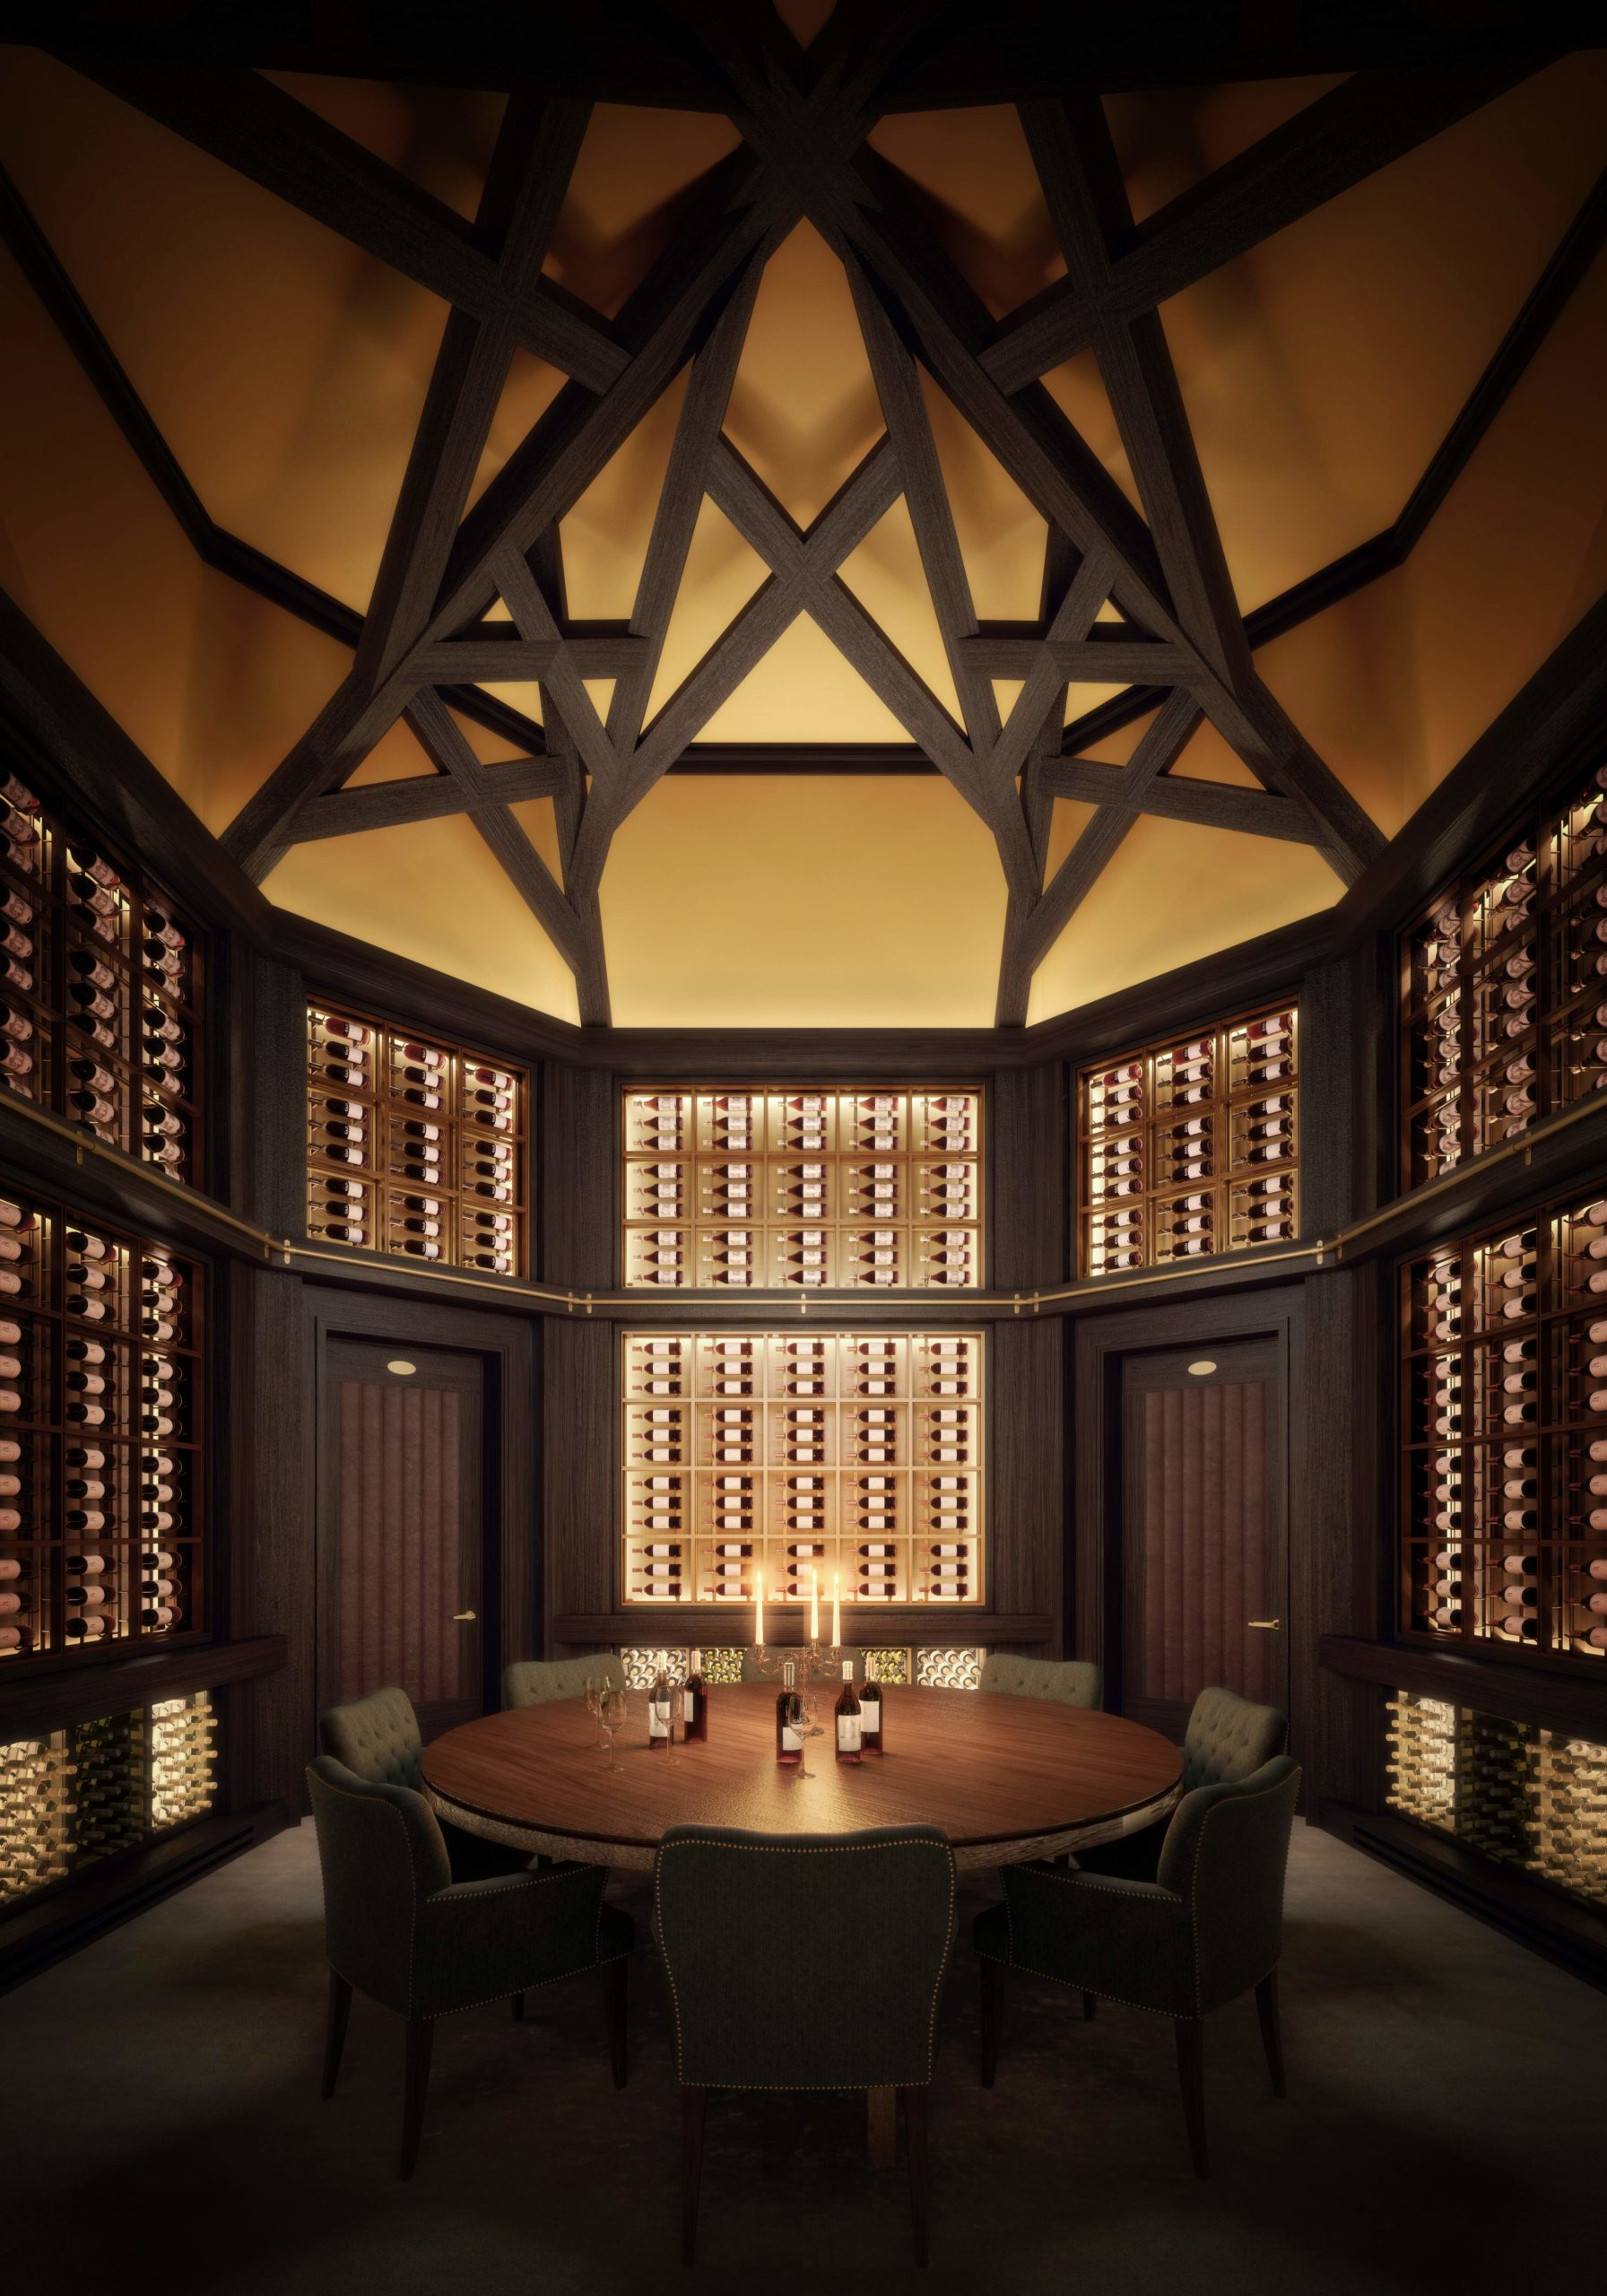 53 West 53 residence wine room located in New York City. Has a high hollow ceiling and dark accented furniture.